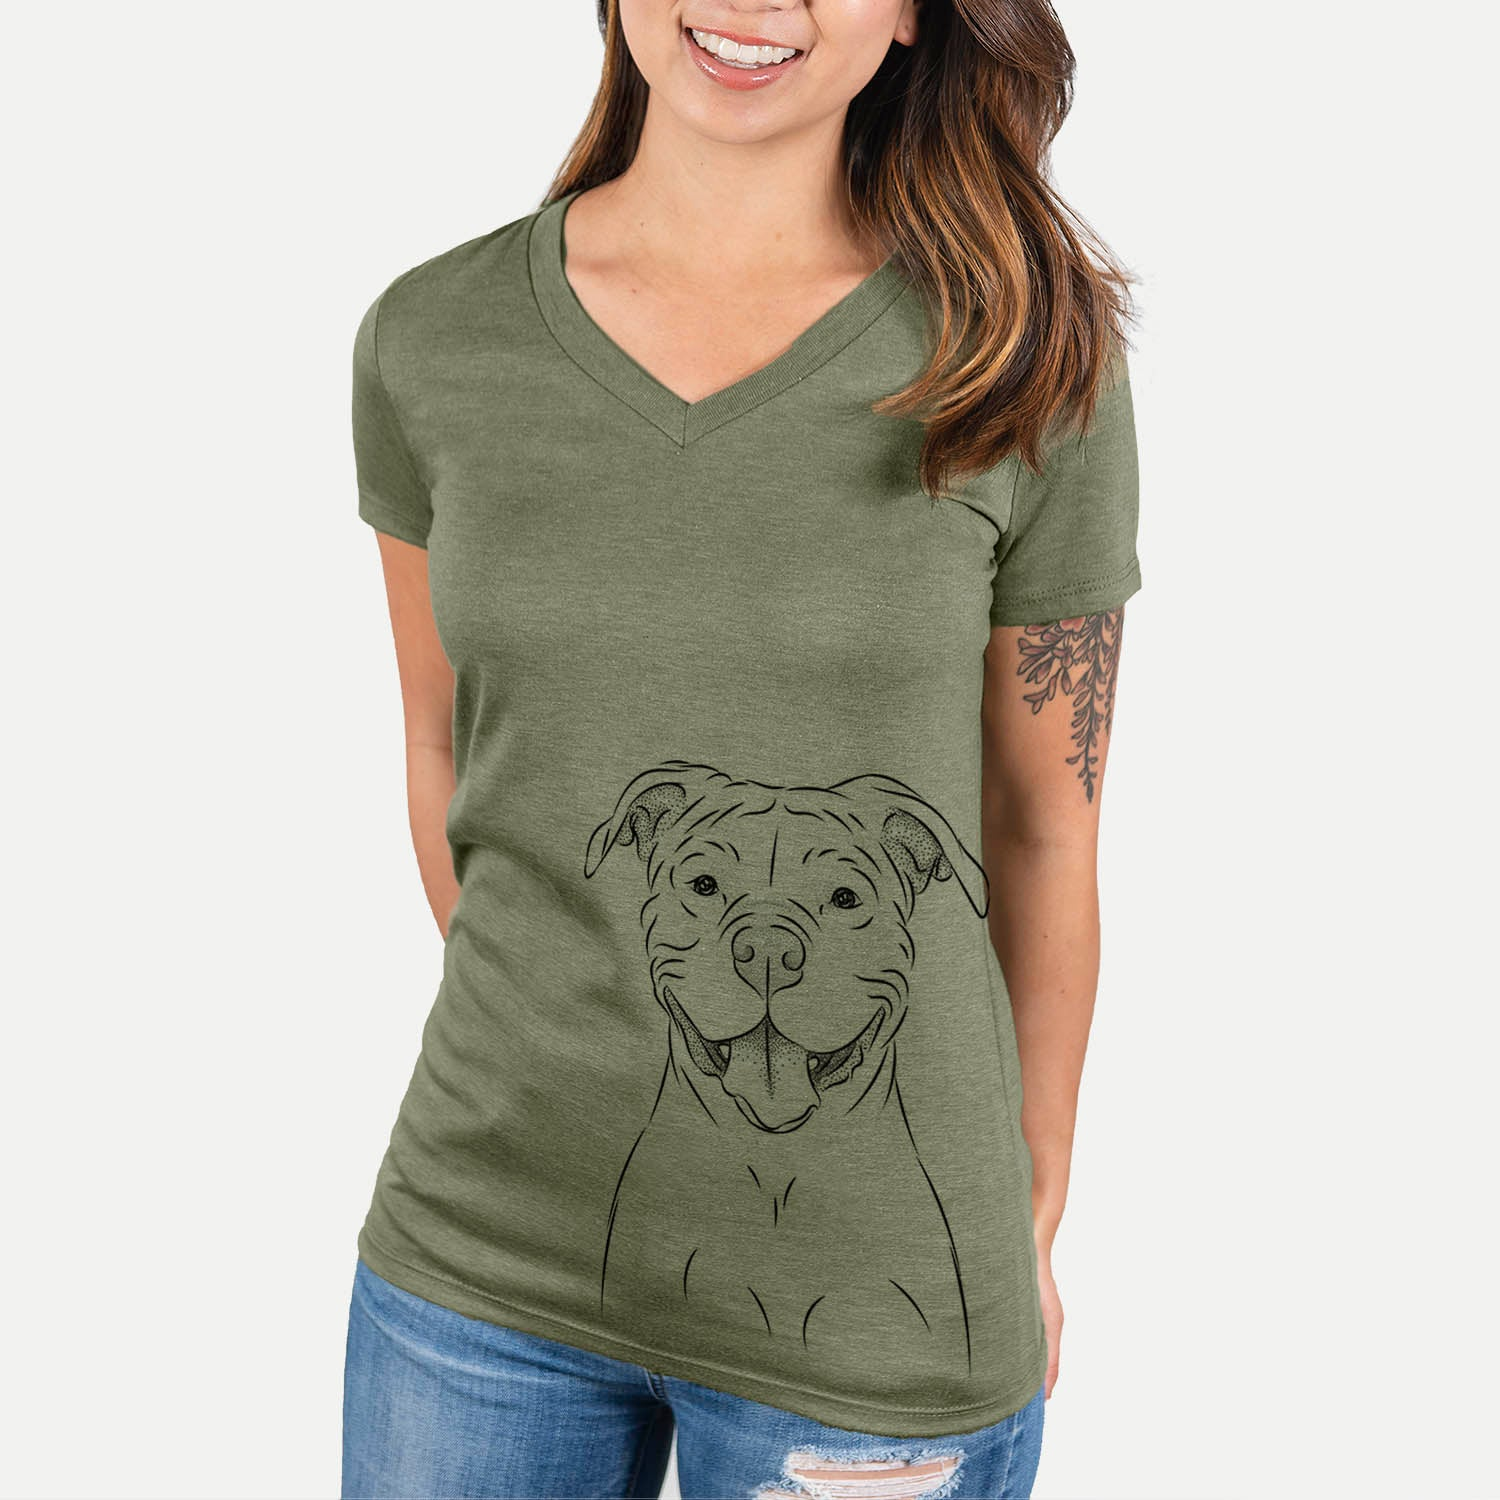 Tyson the American Bulldog - Women's Modern Fit V-neck Shirt